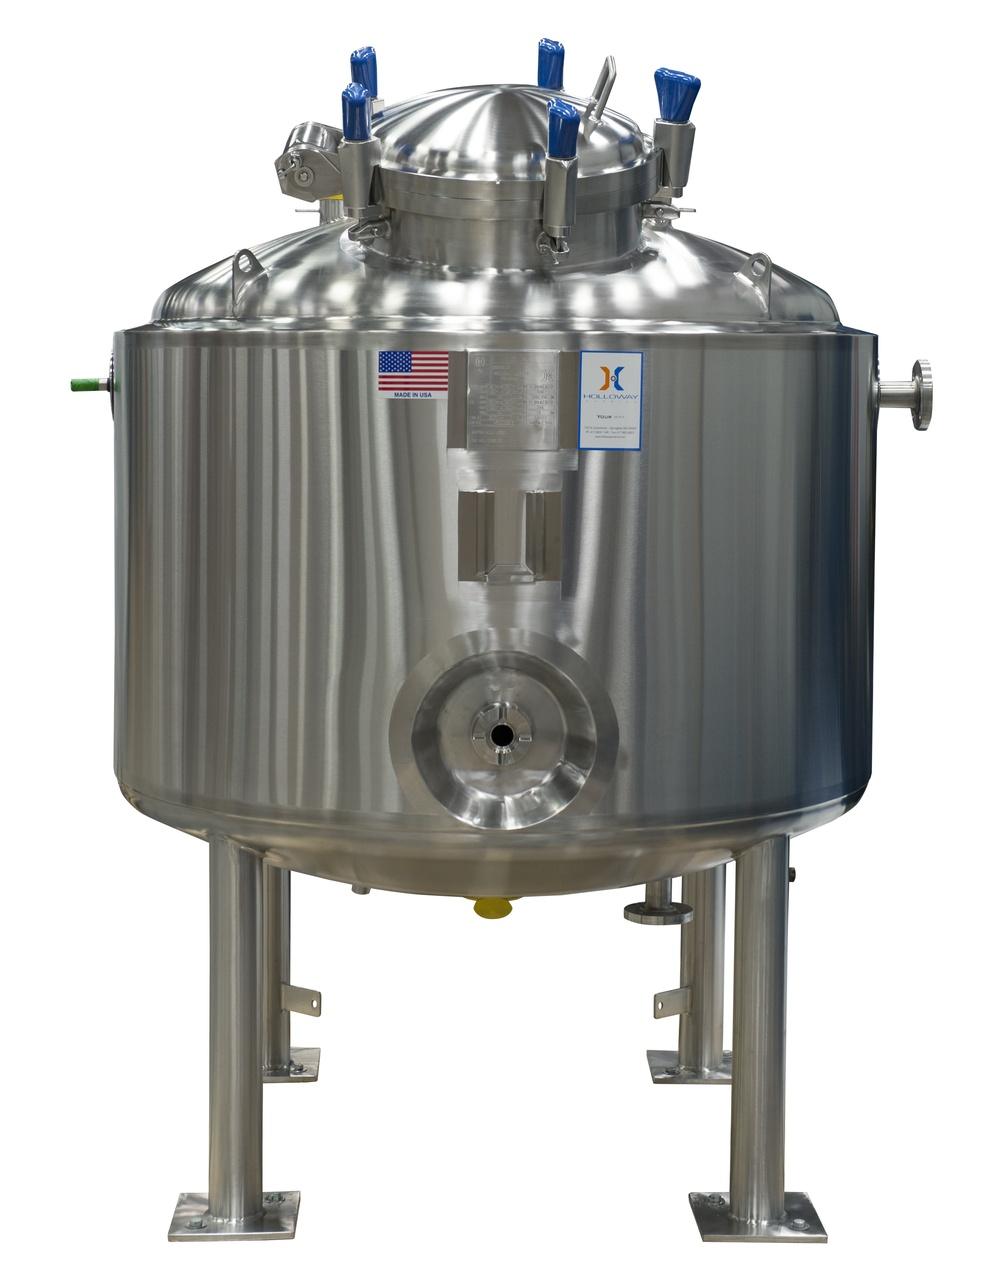 HOLLOWAY proudly produces pharmaceutical stainless steel solutions like this CIP vessel.